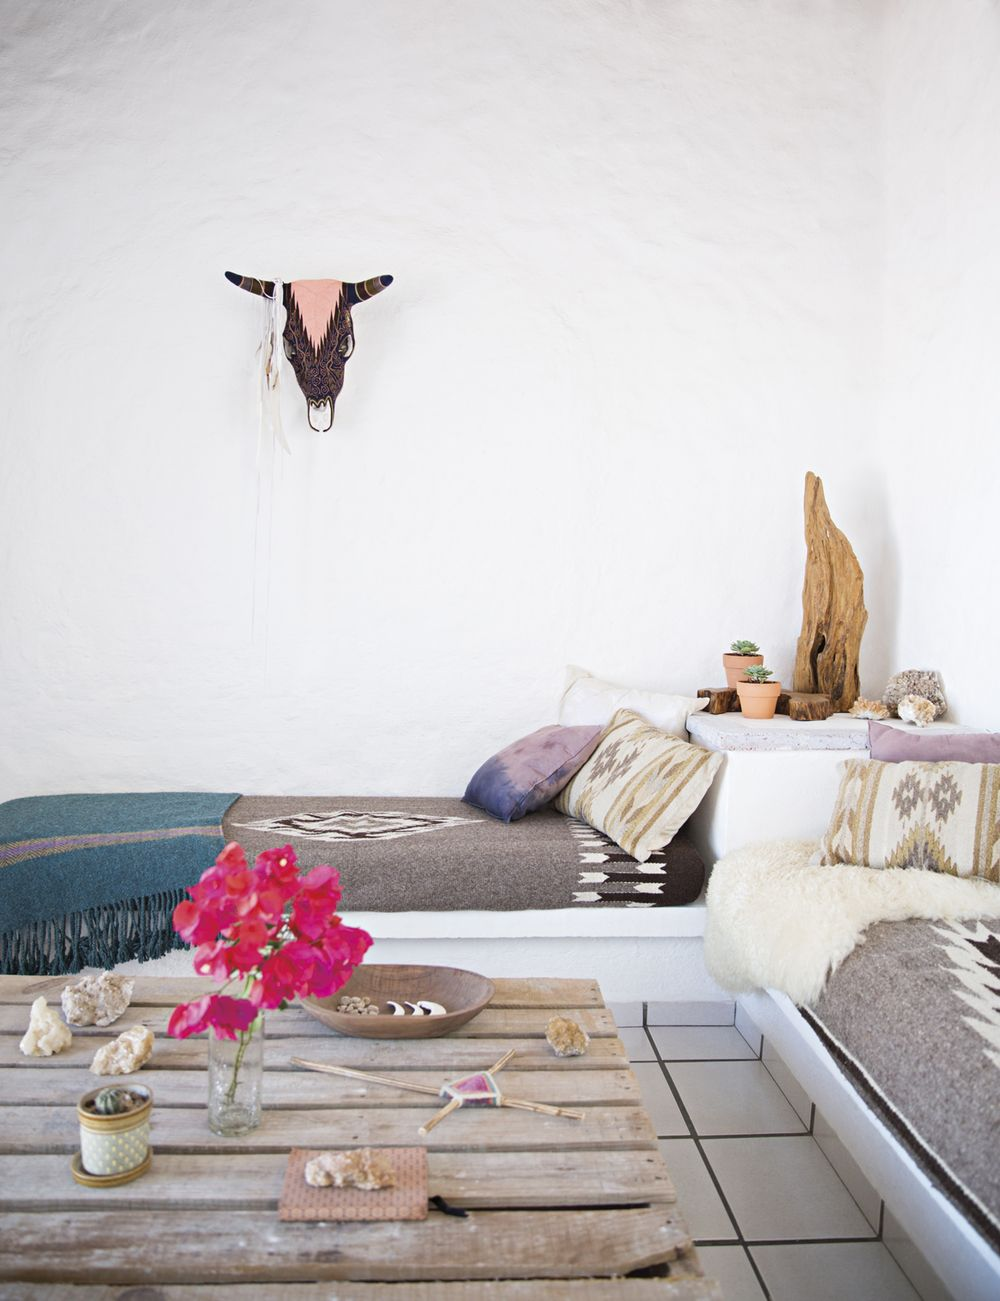 Boho Chic Home With Mexican Decor Touches Deco Ethnique Deco Home And Deco